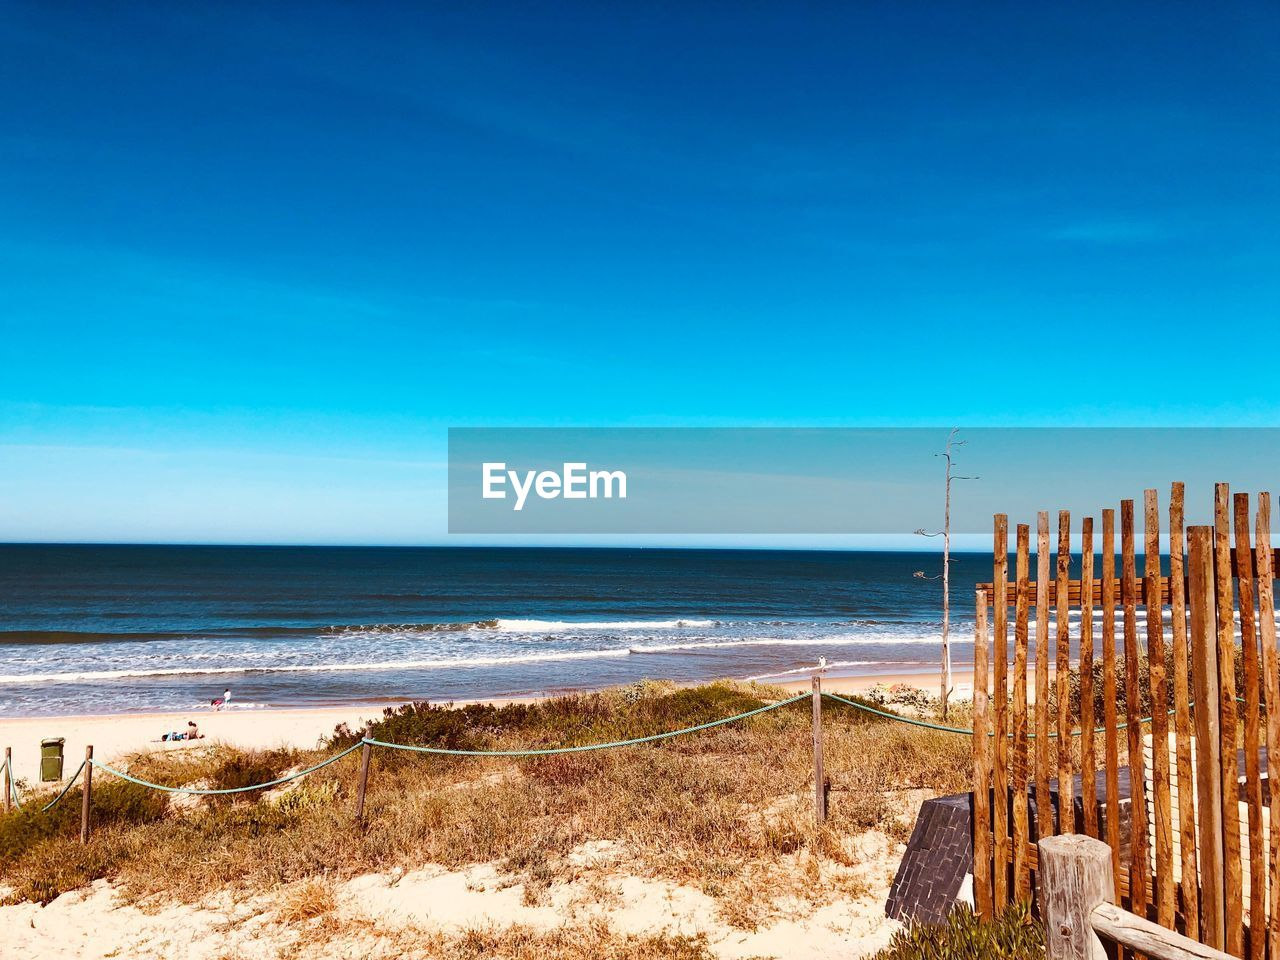 water, sea, sky, beach, land, horizon, horizon over water, scenics - nature, blue, tranquility, beauty in nature, tranquil scene, nature, sand, copy space, day, clear sky, no people, idyllic, outdoors, wooden post, post